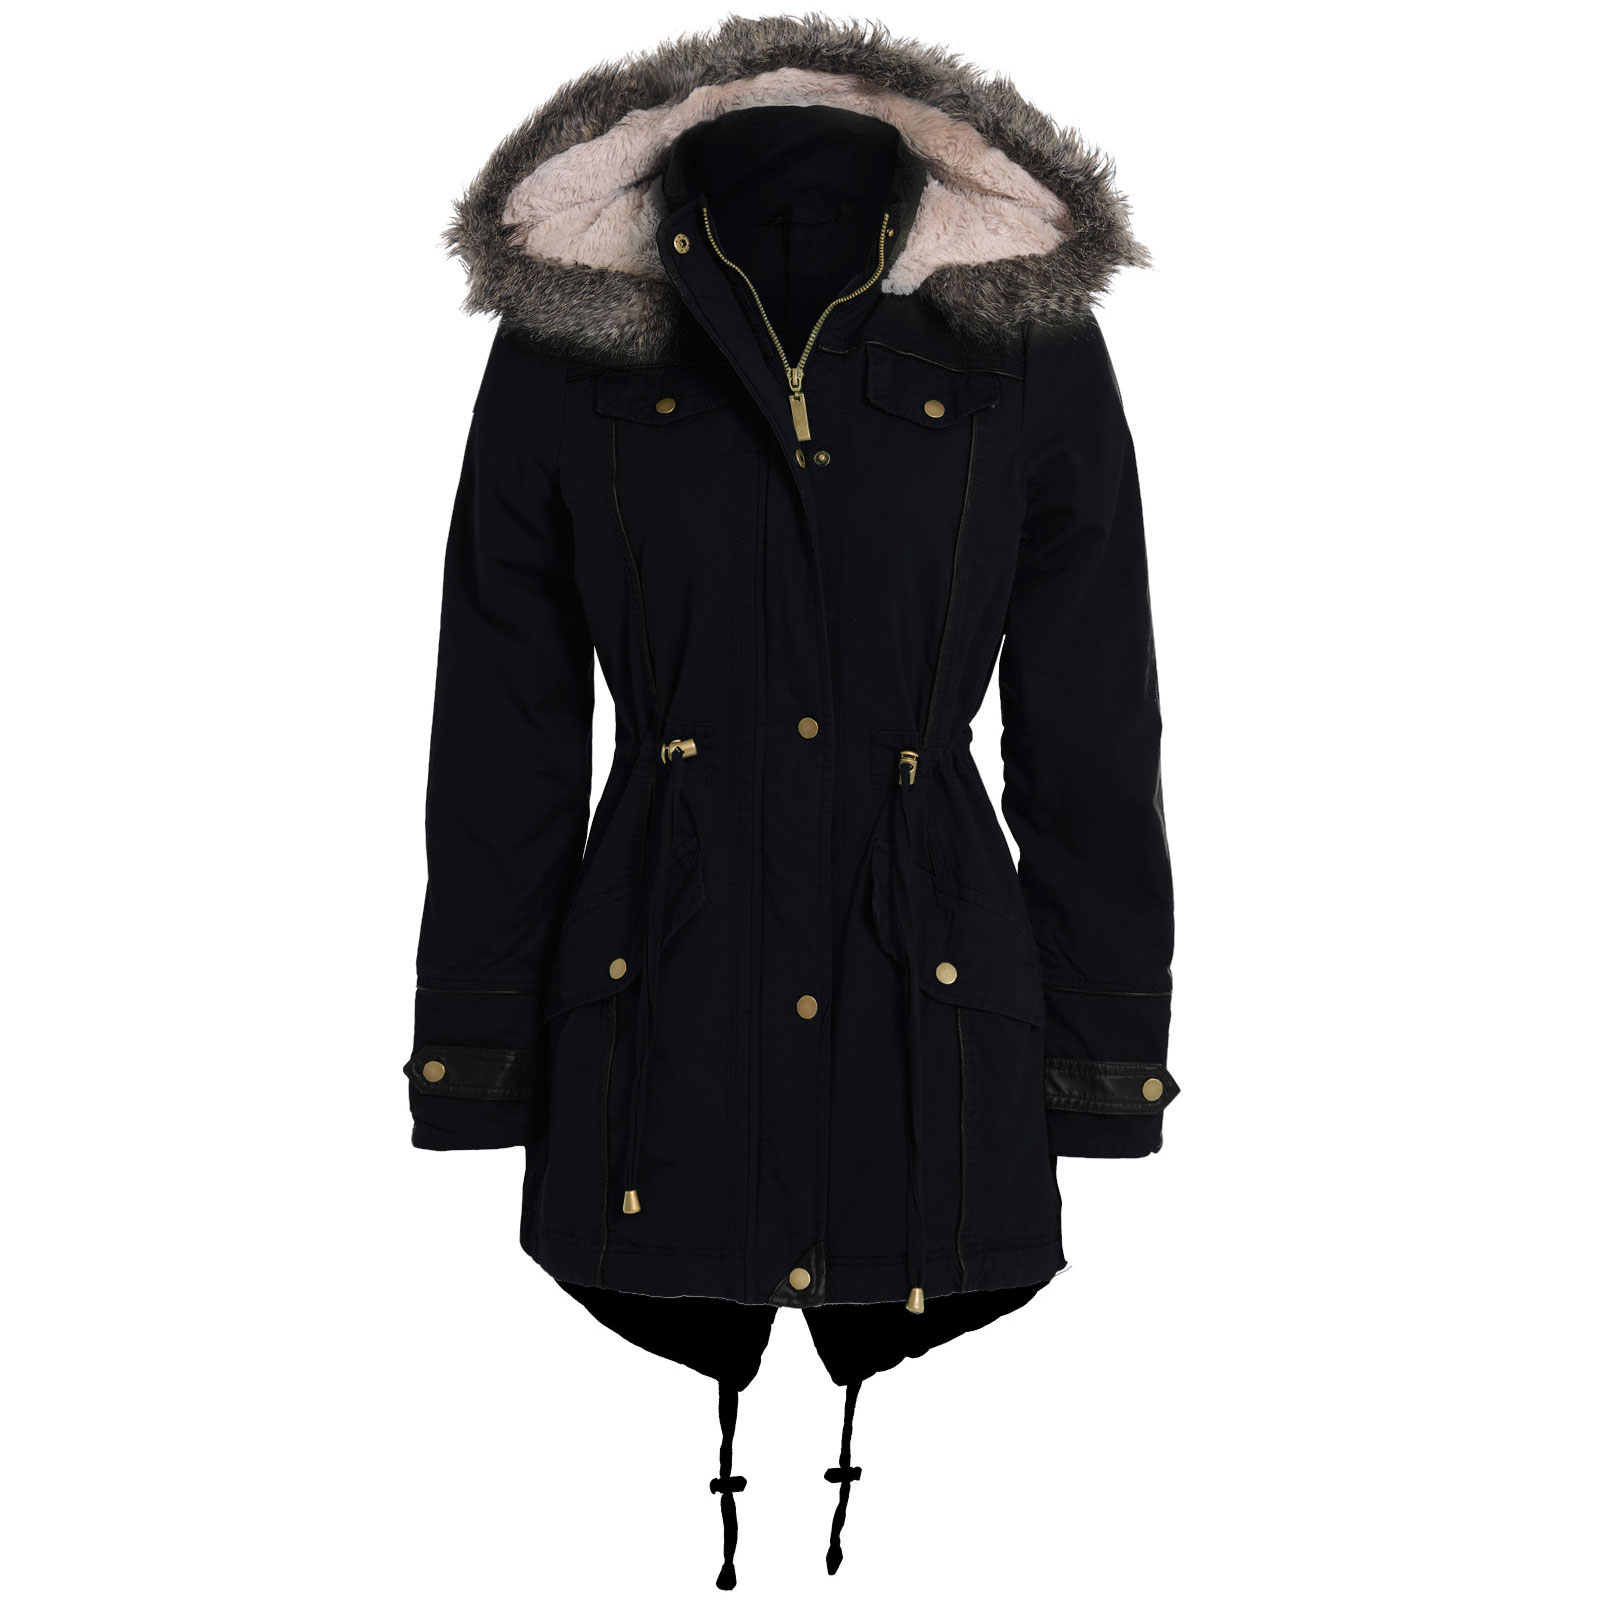 New Womens Ladies Military Faux Fur Hood PU Trim Fishtail Parka Jacket Coat 8-16 | EBay